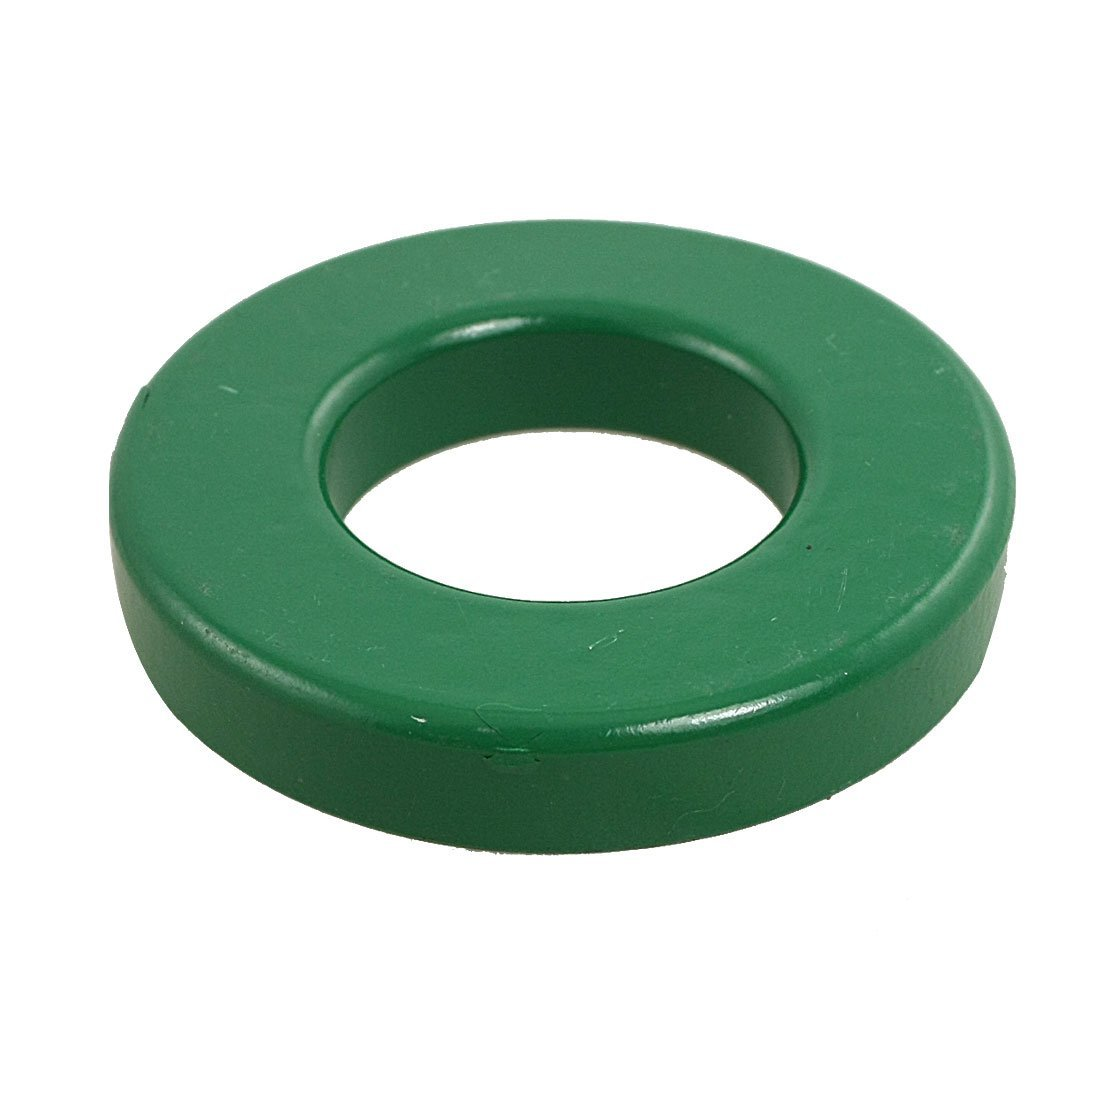 Transformers Ferrite Toroid Cores Green 75mm x 39mm x 13mm fifty shades darker no bounds flogger флоггер из натуральной кожи и замши